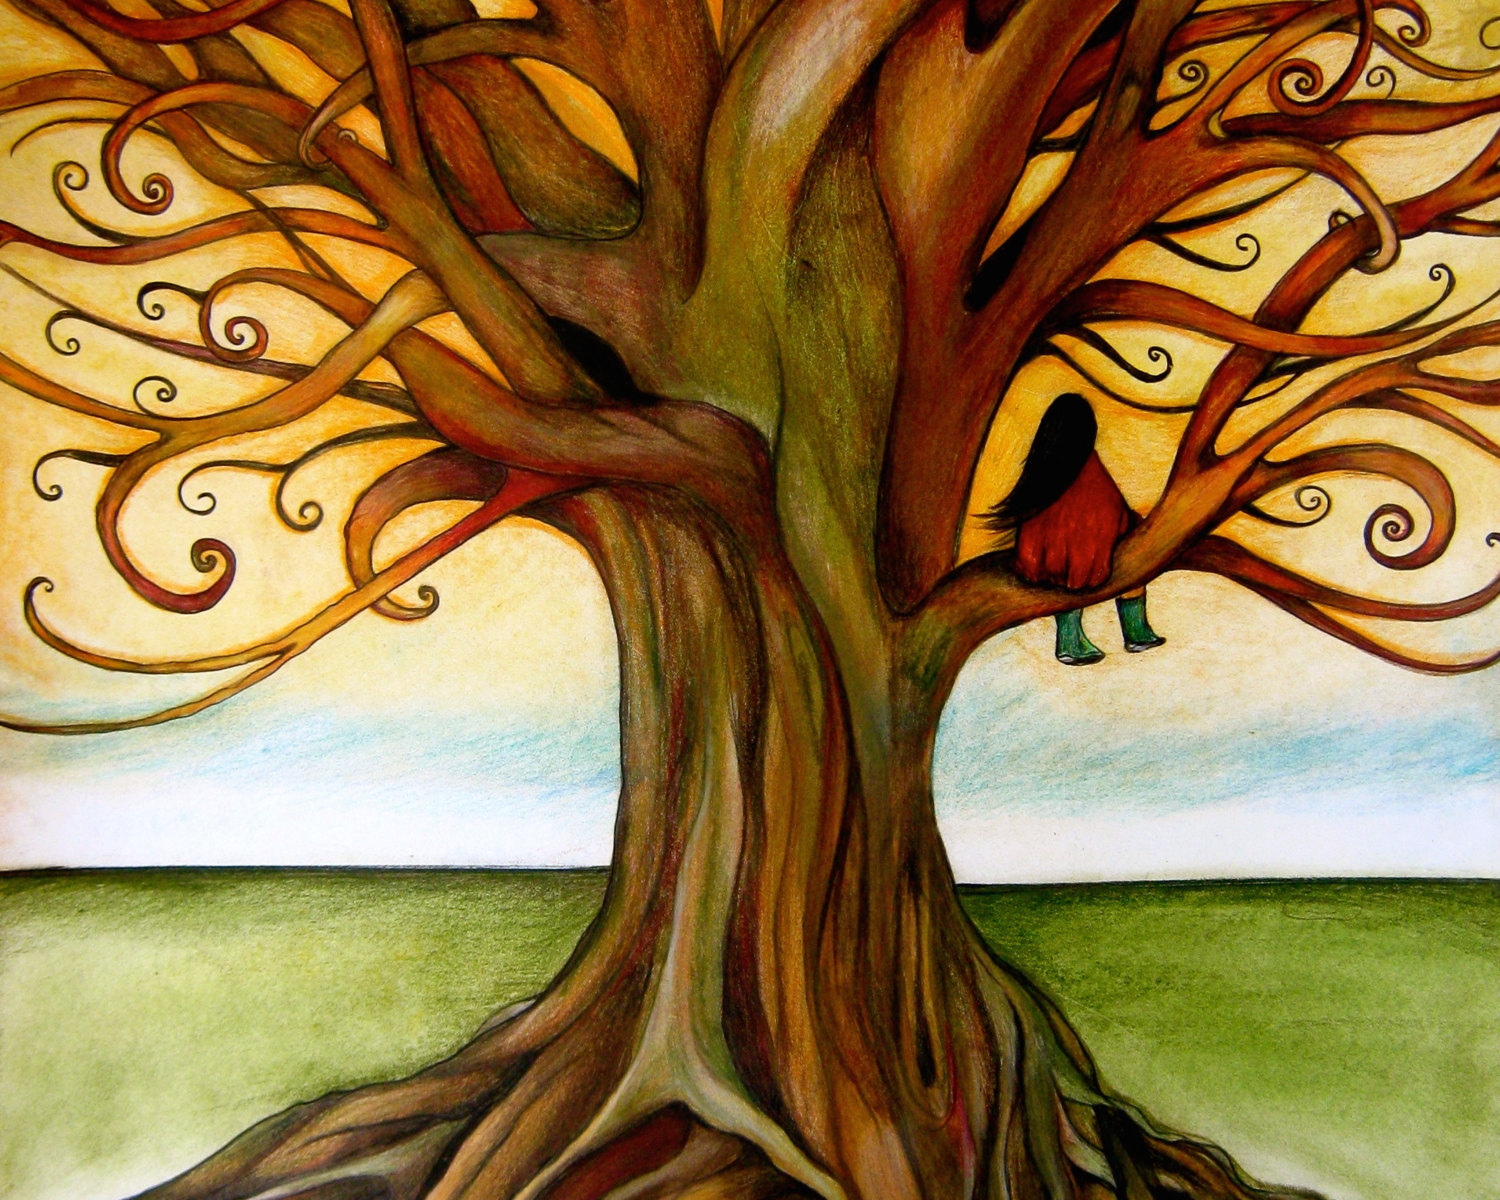 Claudia Tremblay - The Infinite Tree